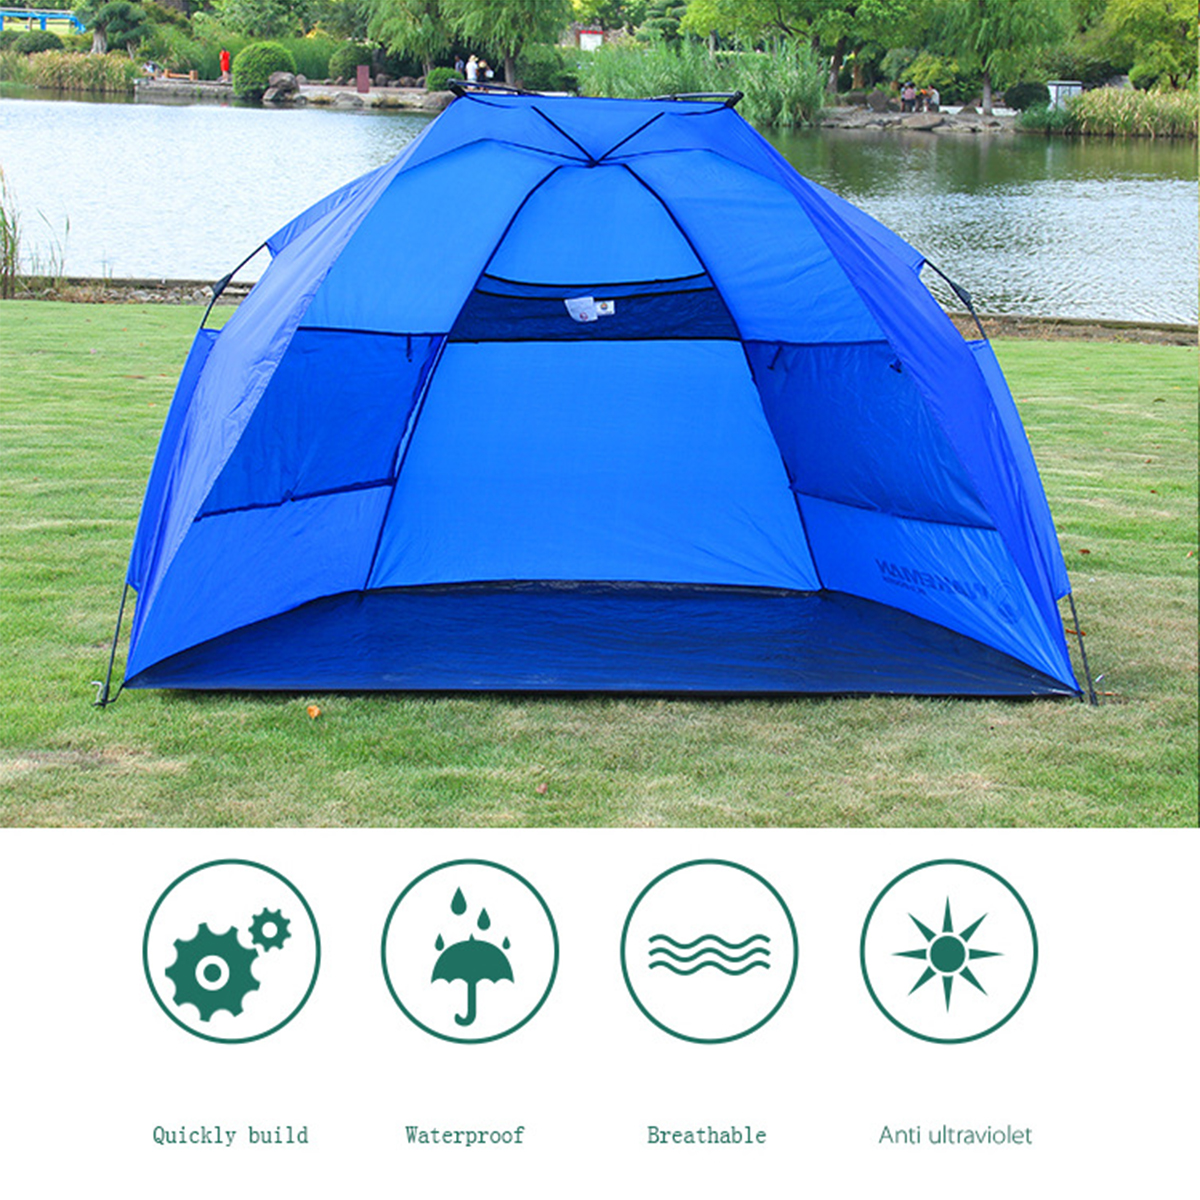 Outdoor Automatic Tents Pop Up Tent Folding Family Travel Quick Shelter Tent Waterproof Fishing Camping Beach Tent Sun Shelter